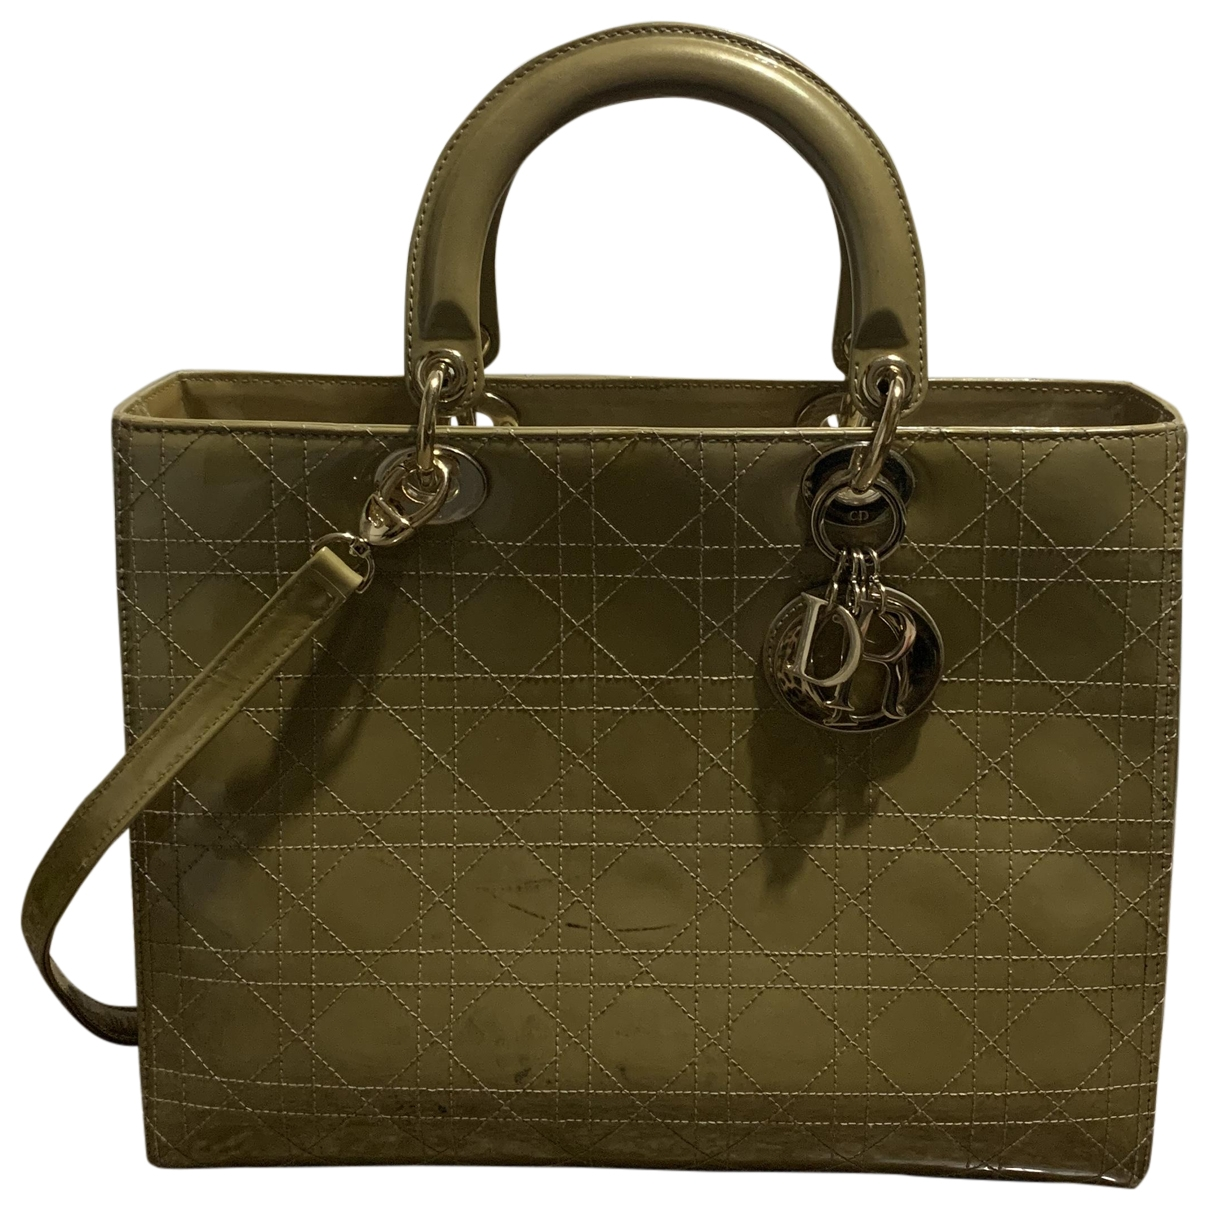 Dior Lady Dior Beige Patent leather handbag for Women \N